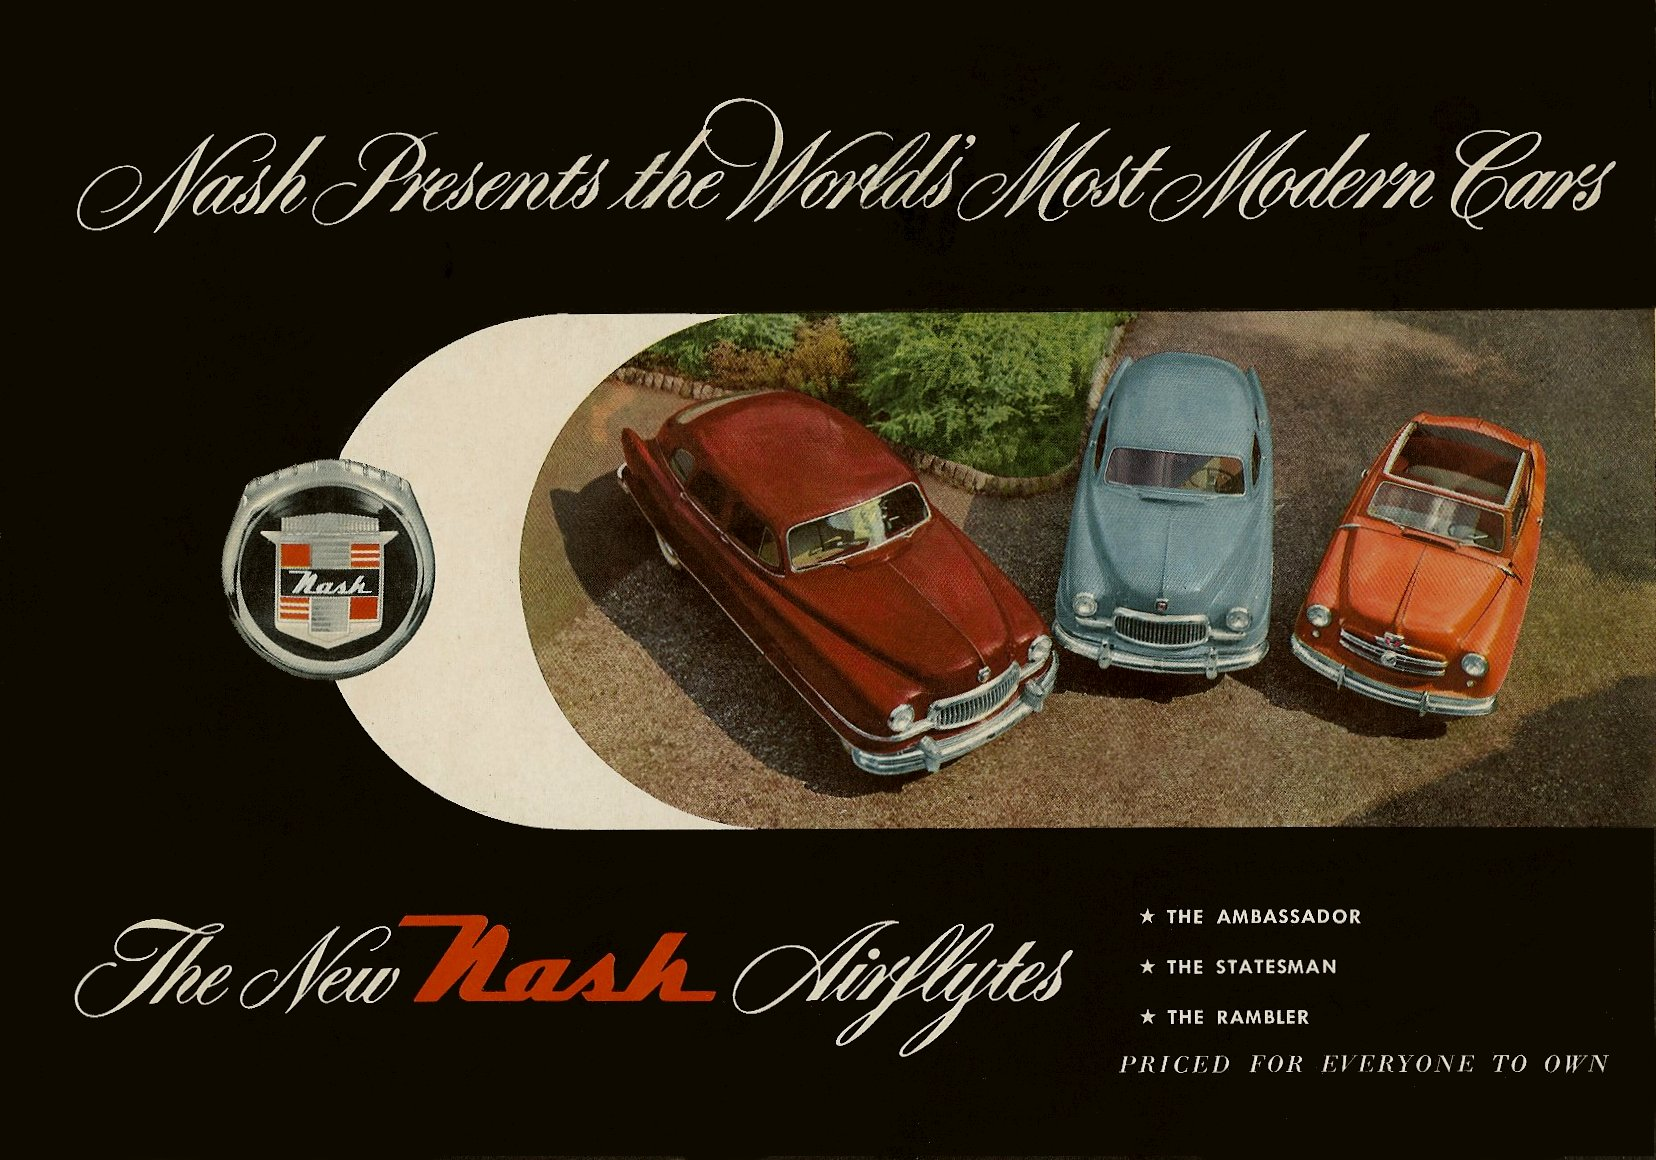 1951 NASH The New NASH Airflytes Sales Catalog NSP51-783-400M – October 1, 1951 Front cover